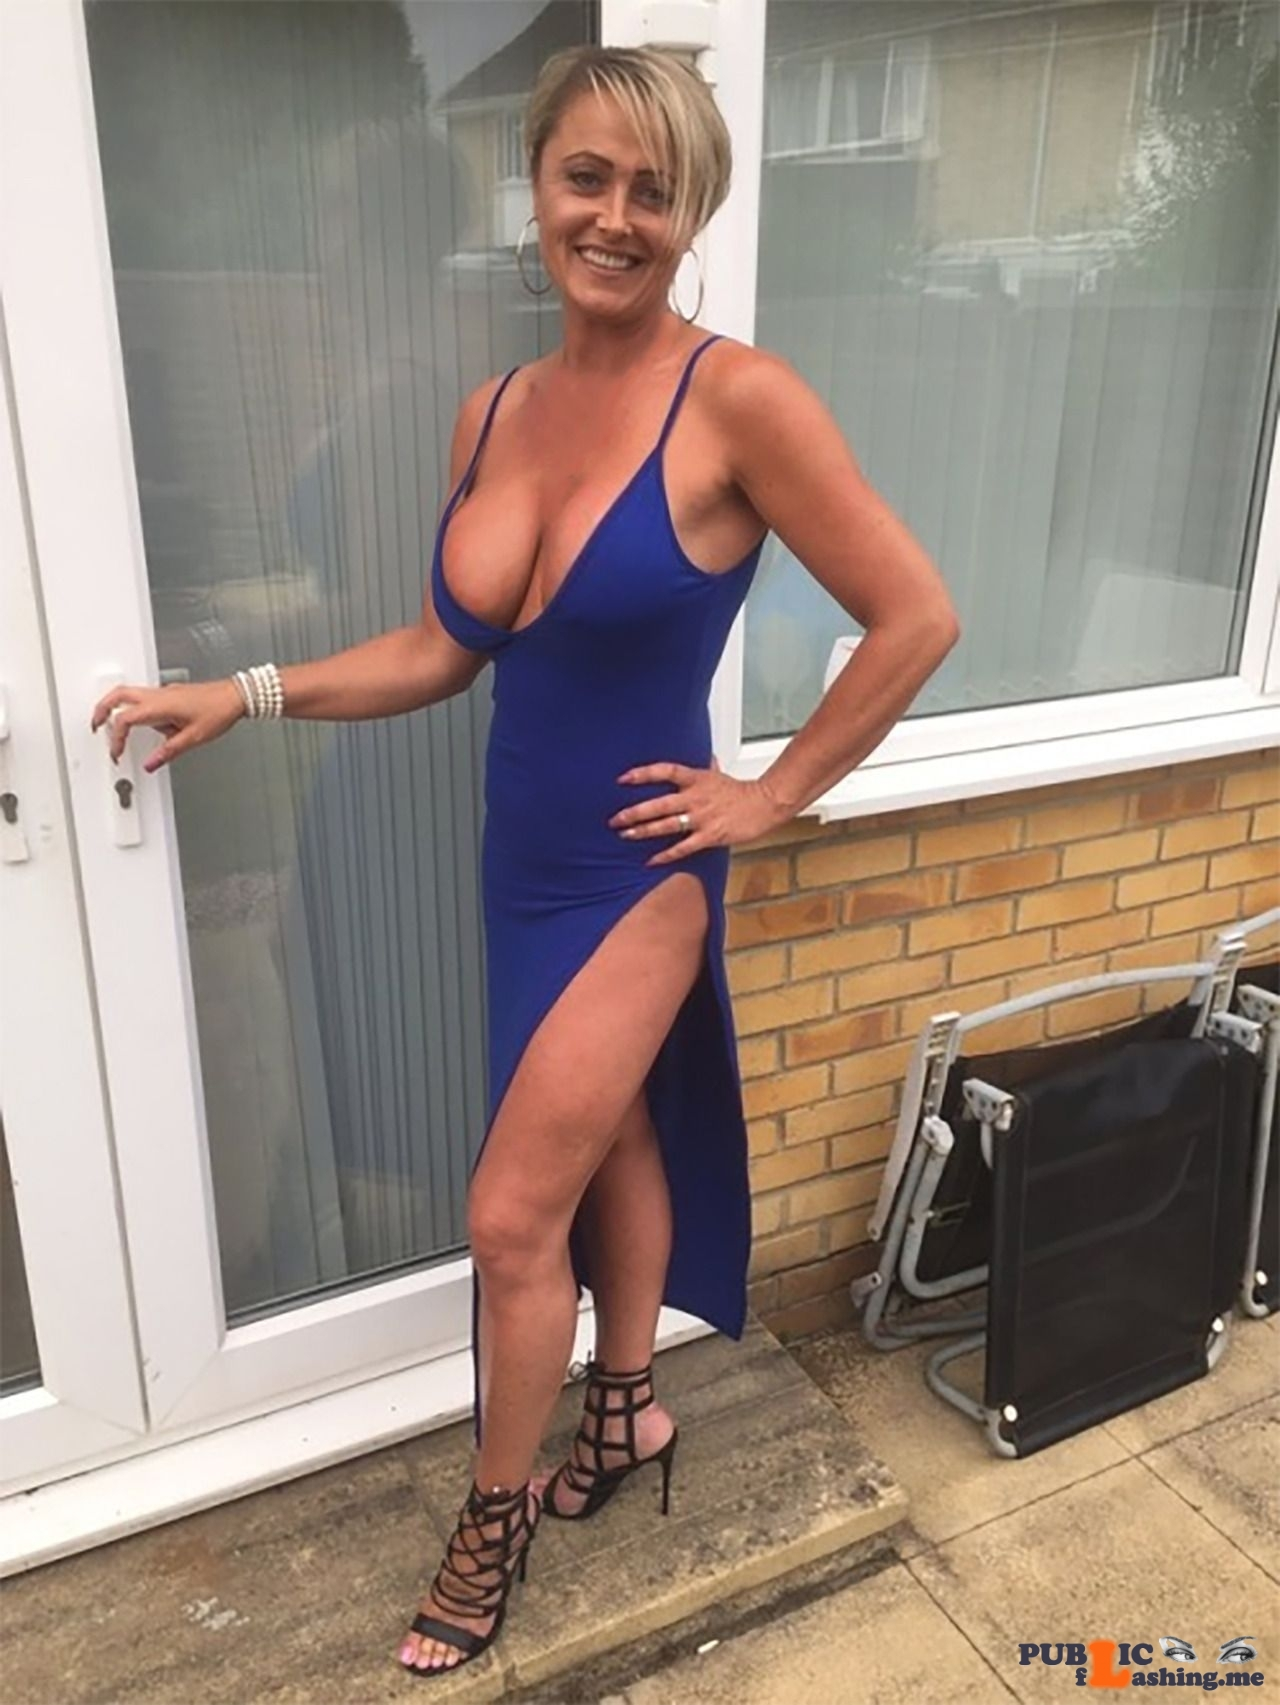 Public Flashing Pictures MILF pics MILF Hot Wife Pics Hot Wife Boobs pics Boobs Amateur pics Amateur : You probably read a post about chav girls we published a while ago. As you were pretty interested in this type of slut we go a little bit further so we stumbled up on some smoking hot Chav Mums on the web....